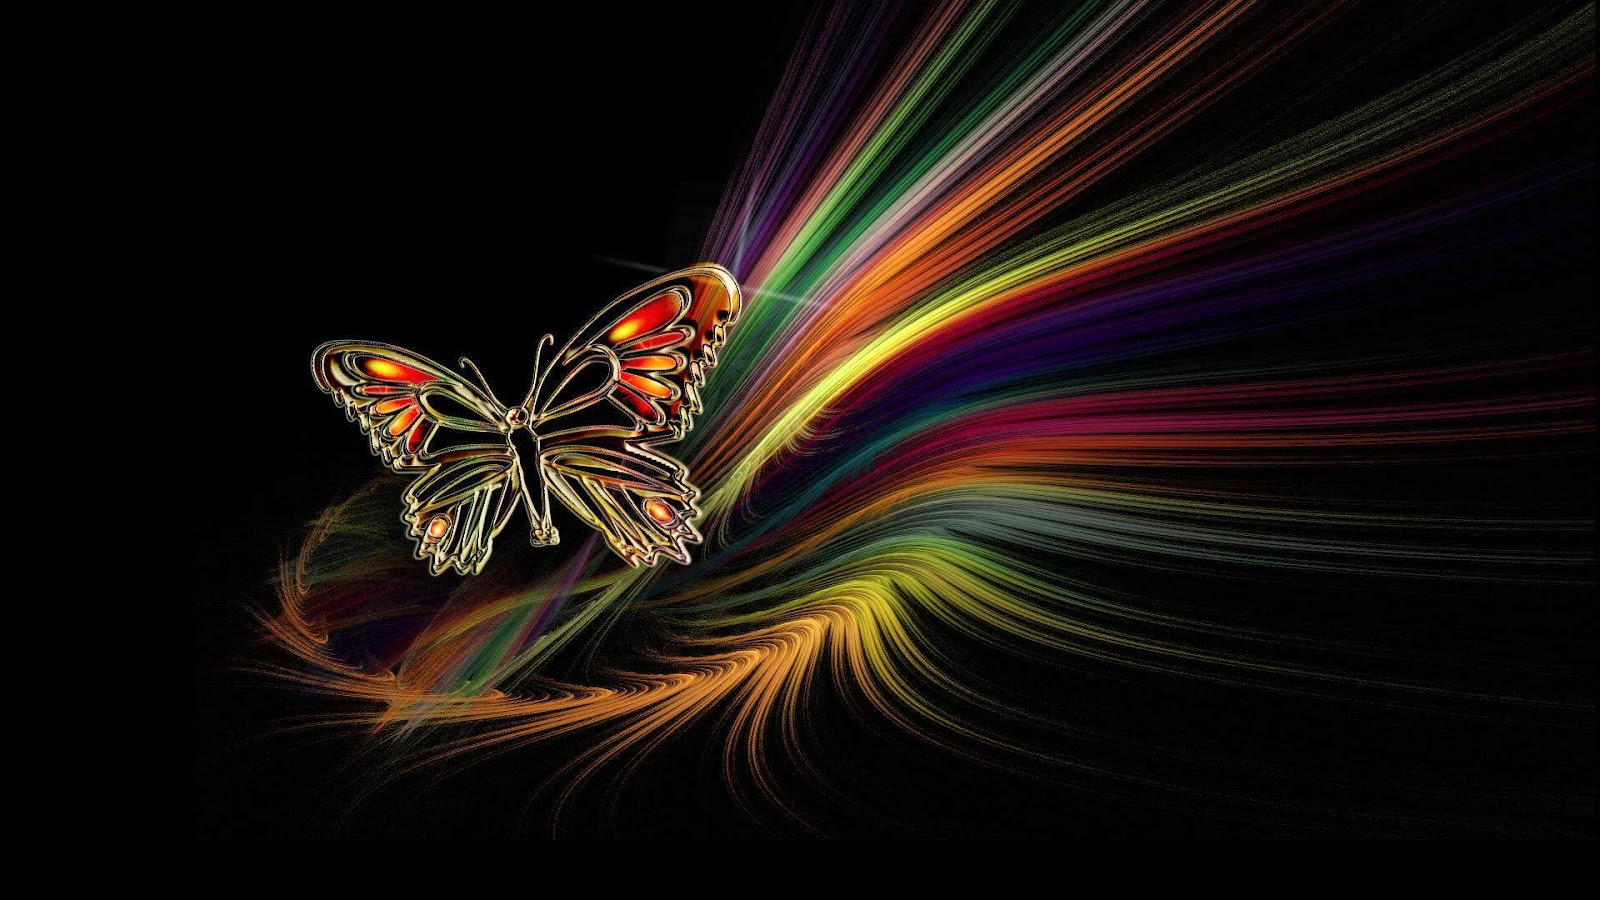 Colorful butterfly hd wallpapers real artistic - Most beautiful dark wallpapers ...